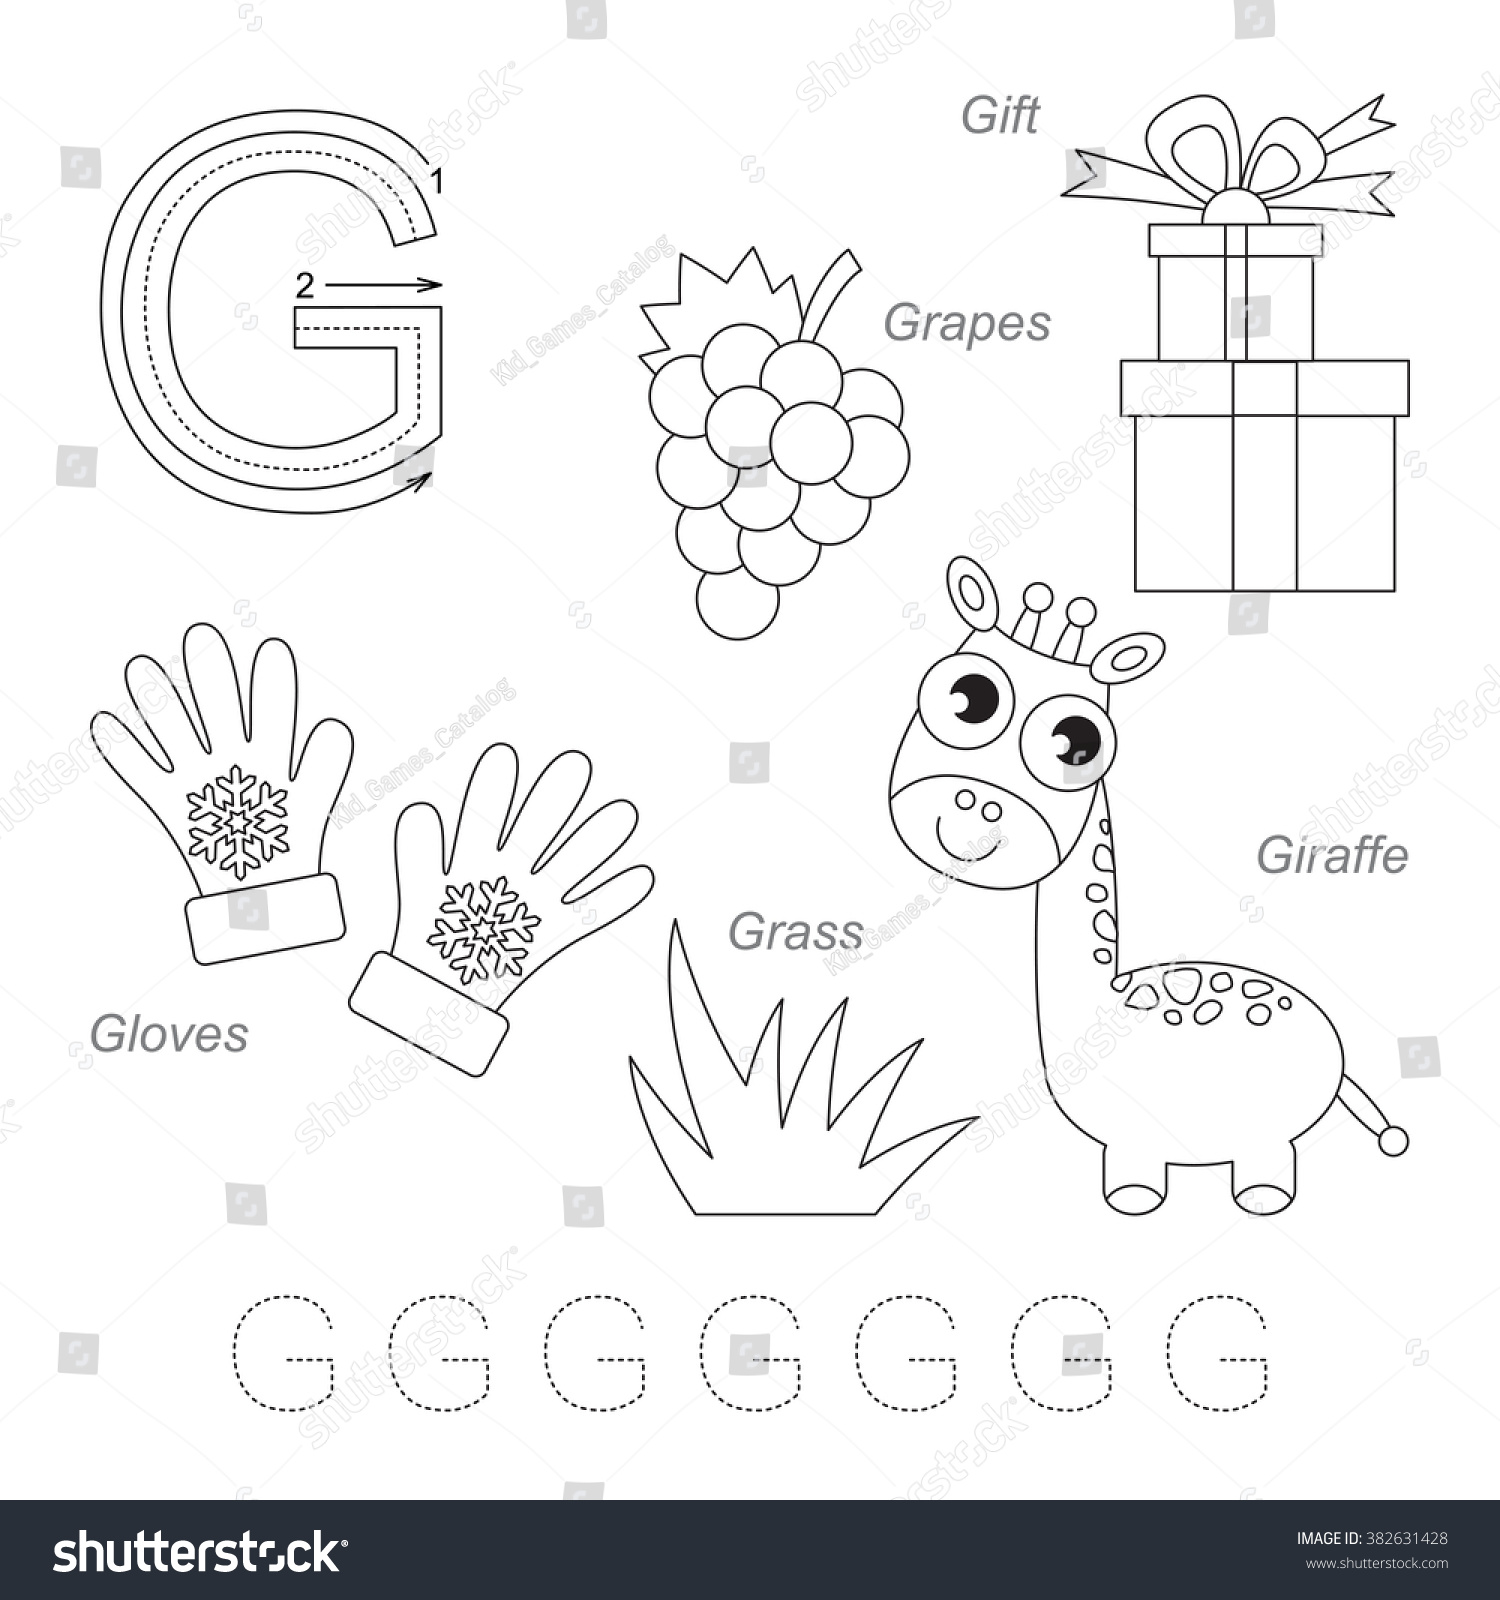 Worksheet Letter G Sort